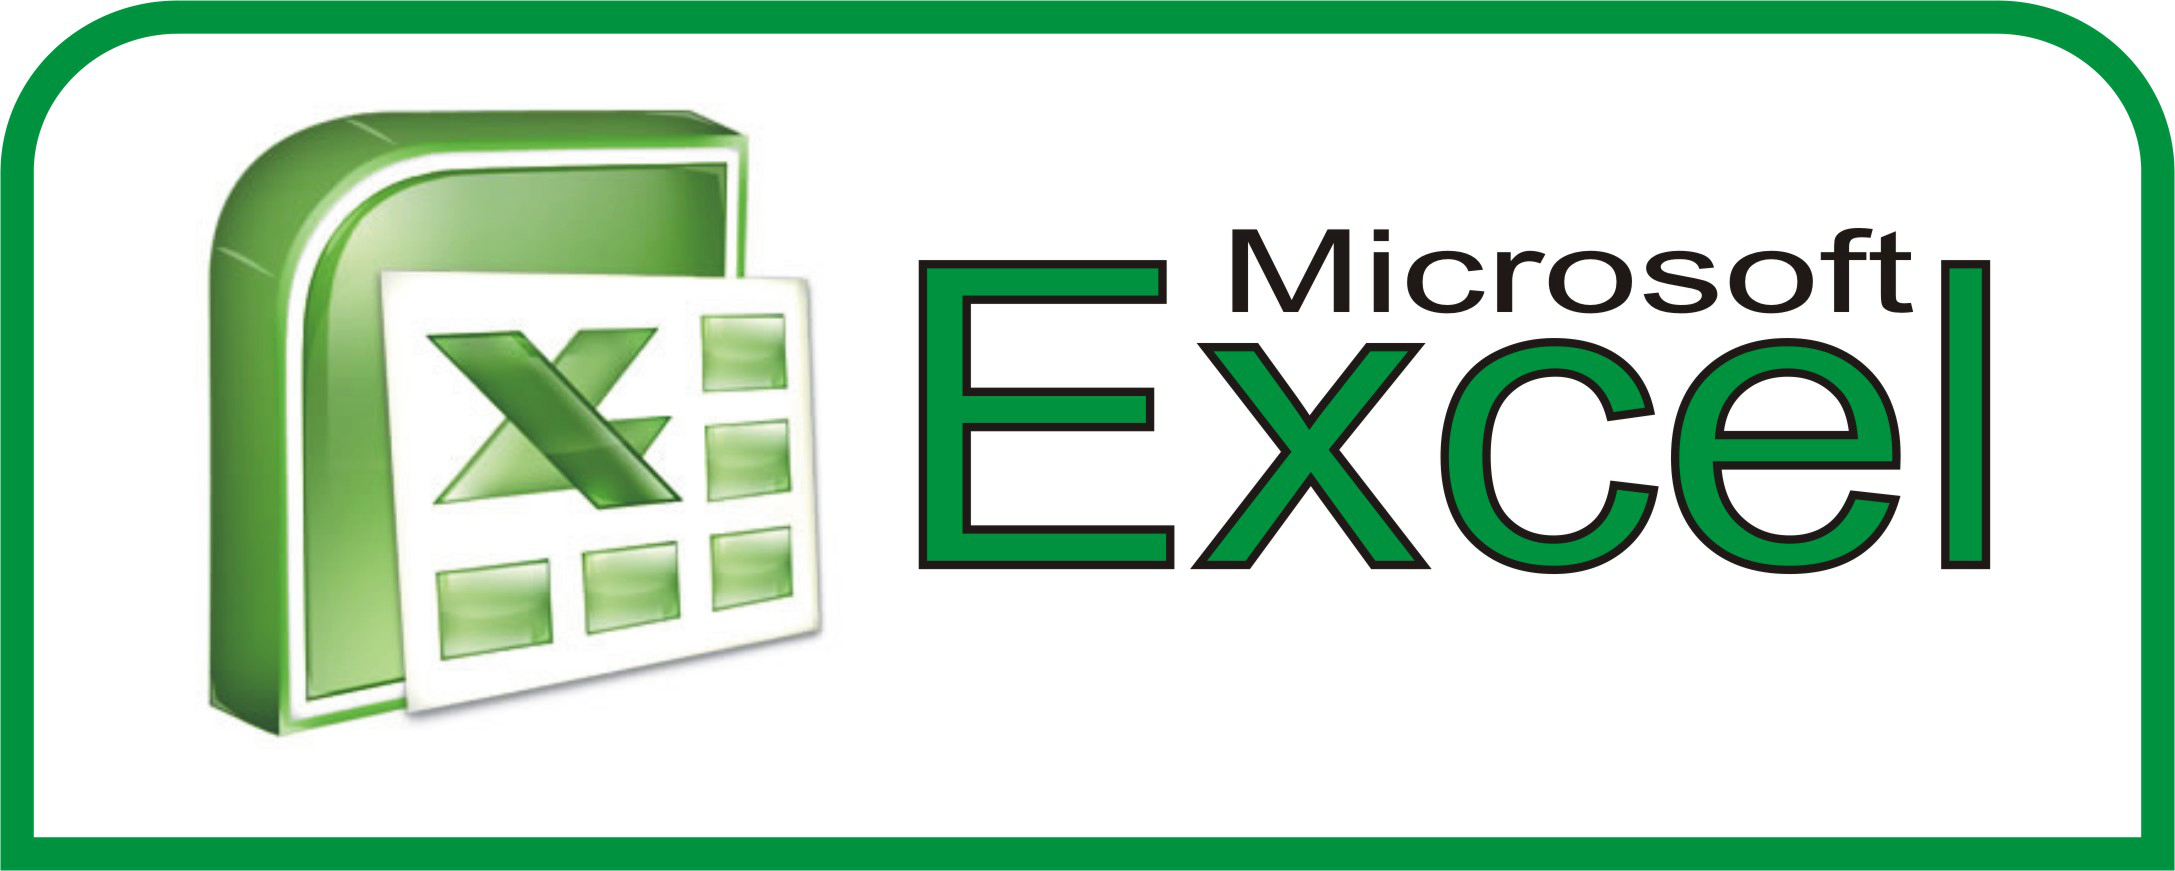 Ediblewildsus  Stunning  Excel Shortcuts You Probably Didnt Know About  Techdissected With Heavenly Schedule Layout Excel Besides Excel Shortcut To Merge Cells Furthermore Sql Server Read From Excel File With Appealing Odbc Excel Also Npoi Read Excel In Addition Sample Mean Excel And Convert Scanned Pdf To Excel As Well As What Is The Percentage Formula In Excel Additionally Online Excel Classes Advanced From Techdissectedcom With Ediblewildsus  Heavenly  Excel Shortcuts You Probably Didnt Know About  Techdissected With Appealing Schedule Layout Excel Besides Excel Shortcut To Merge Cells Furthermore Sql Server Read From Excel File And Stunning Odbc Excel Also Npoi Read Excel In Addition Sample Mean Excel From Techdissectedcom